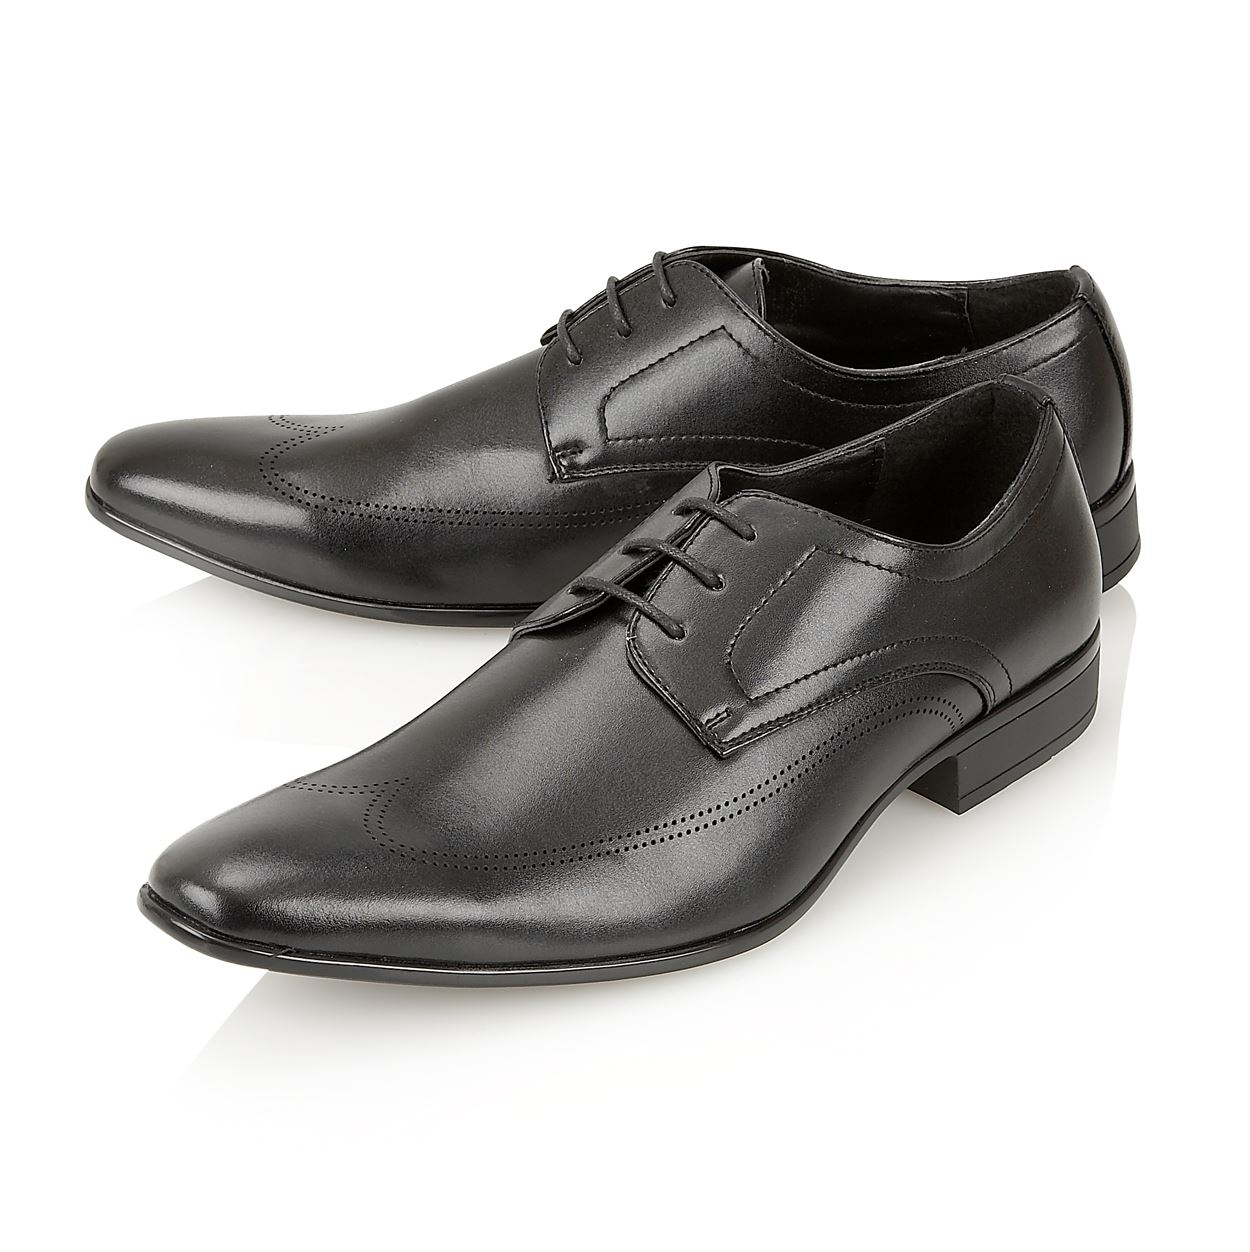 monti albani mens formal lace up office wedding shoes